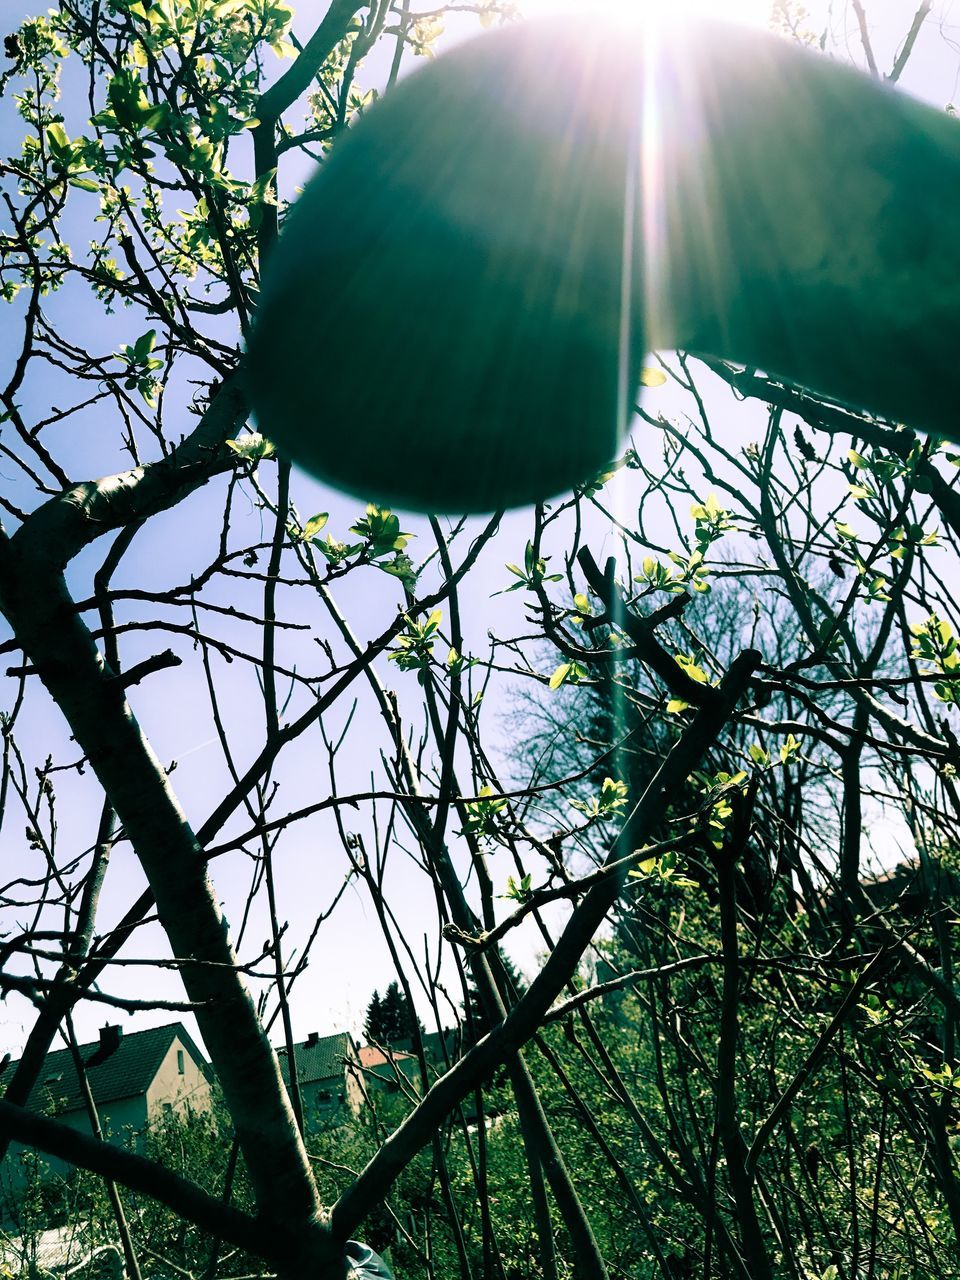 tree, growth, no people, branch, low angle view, sunlight, green color, day, nature, outdoors, beauty in nature, plant, leaf, sky, clear sky, close-up, freshness